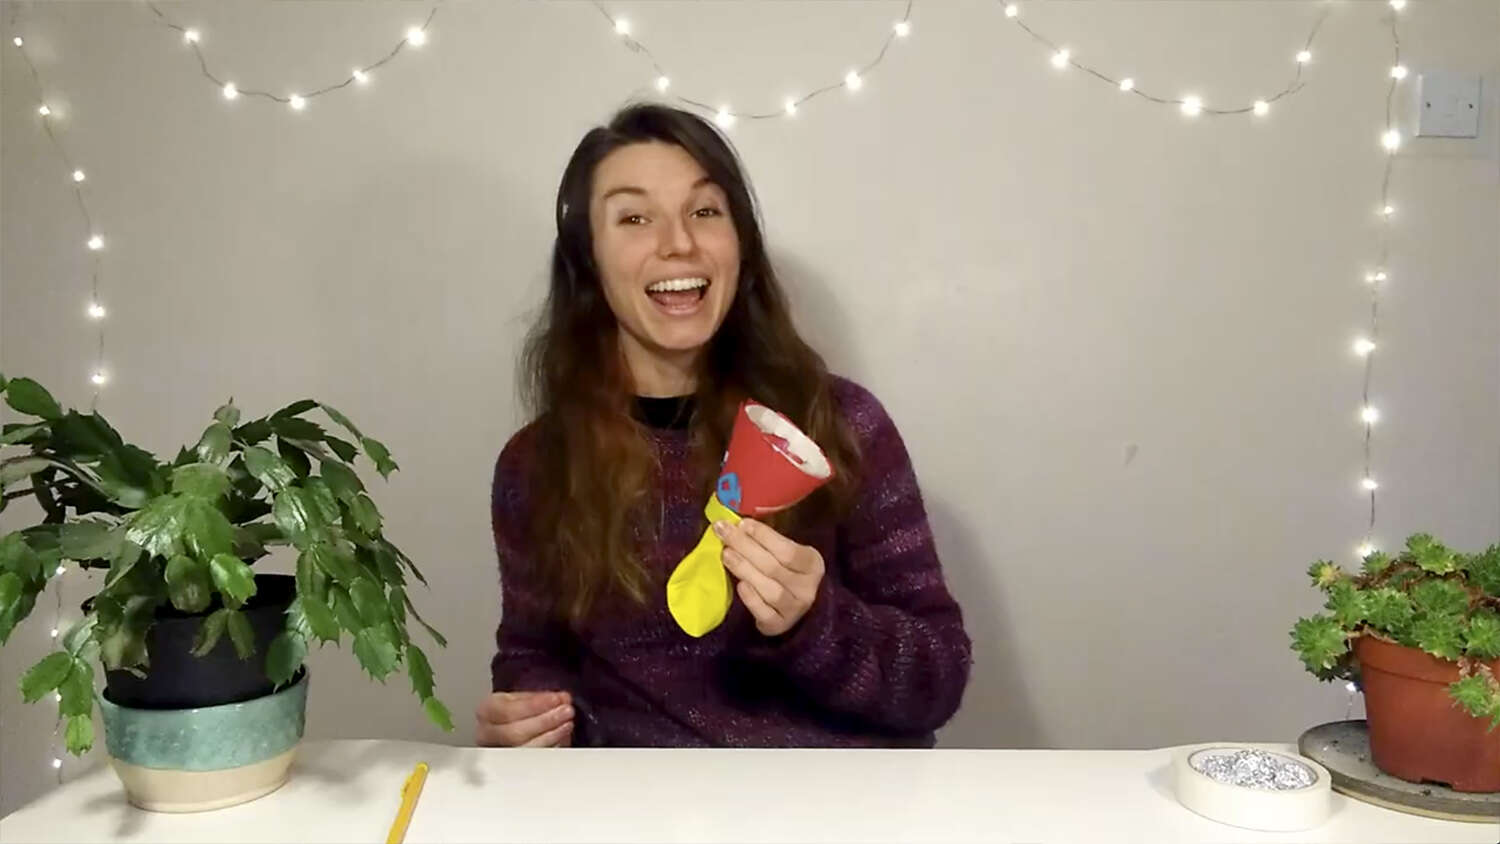 Launch our own snowballs in this family-friendly science experiment with Imogen and Sam